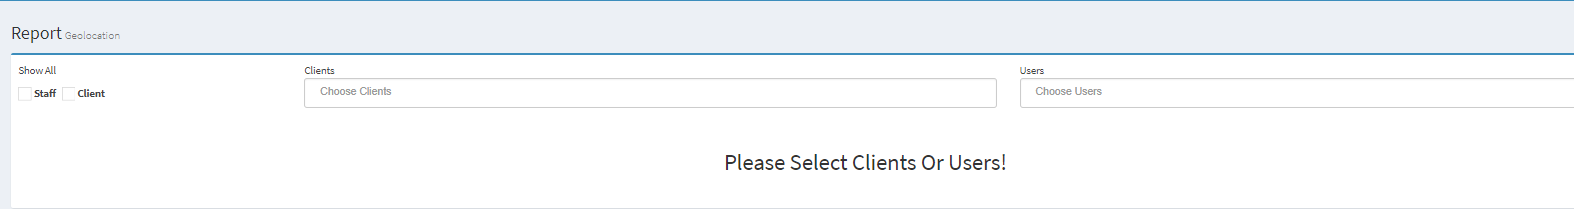 Select_Clients_or_users.png